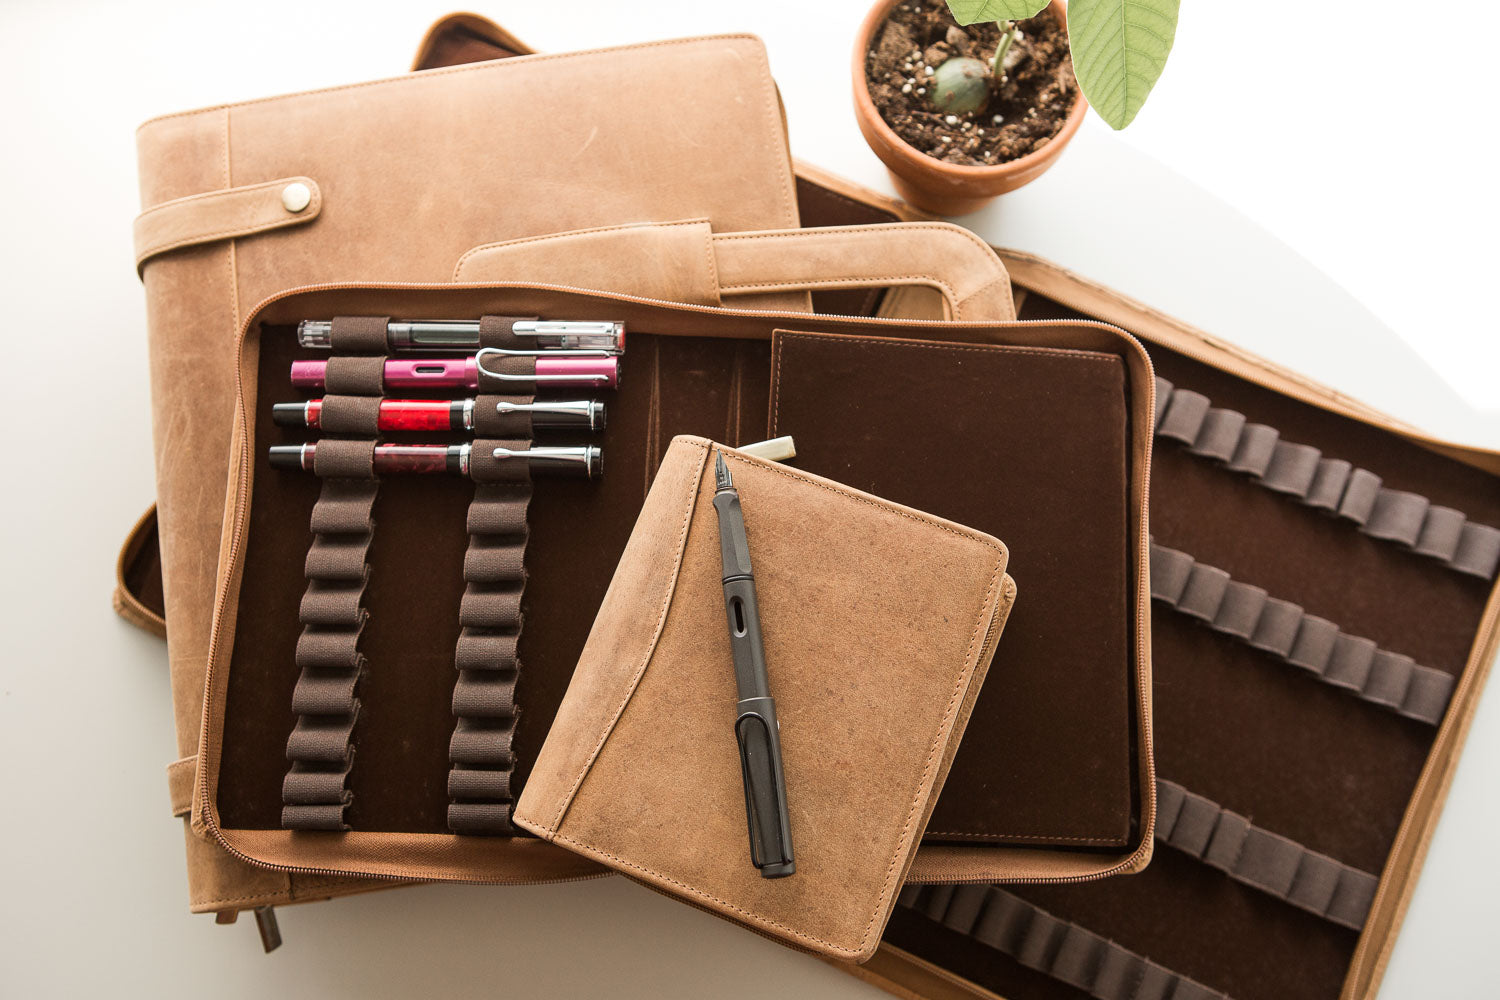 Girologio 24 Pen Case - Saddle